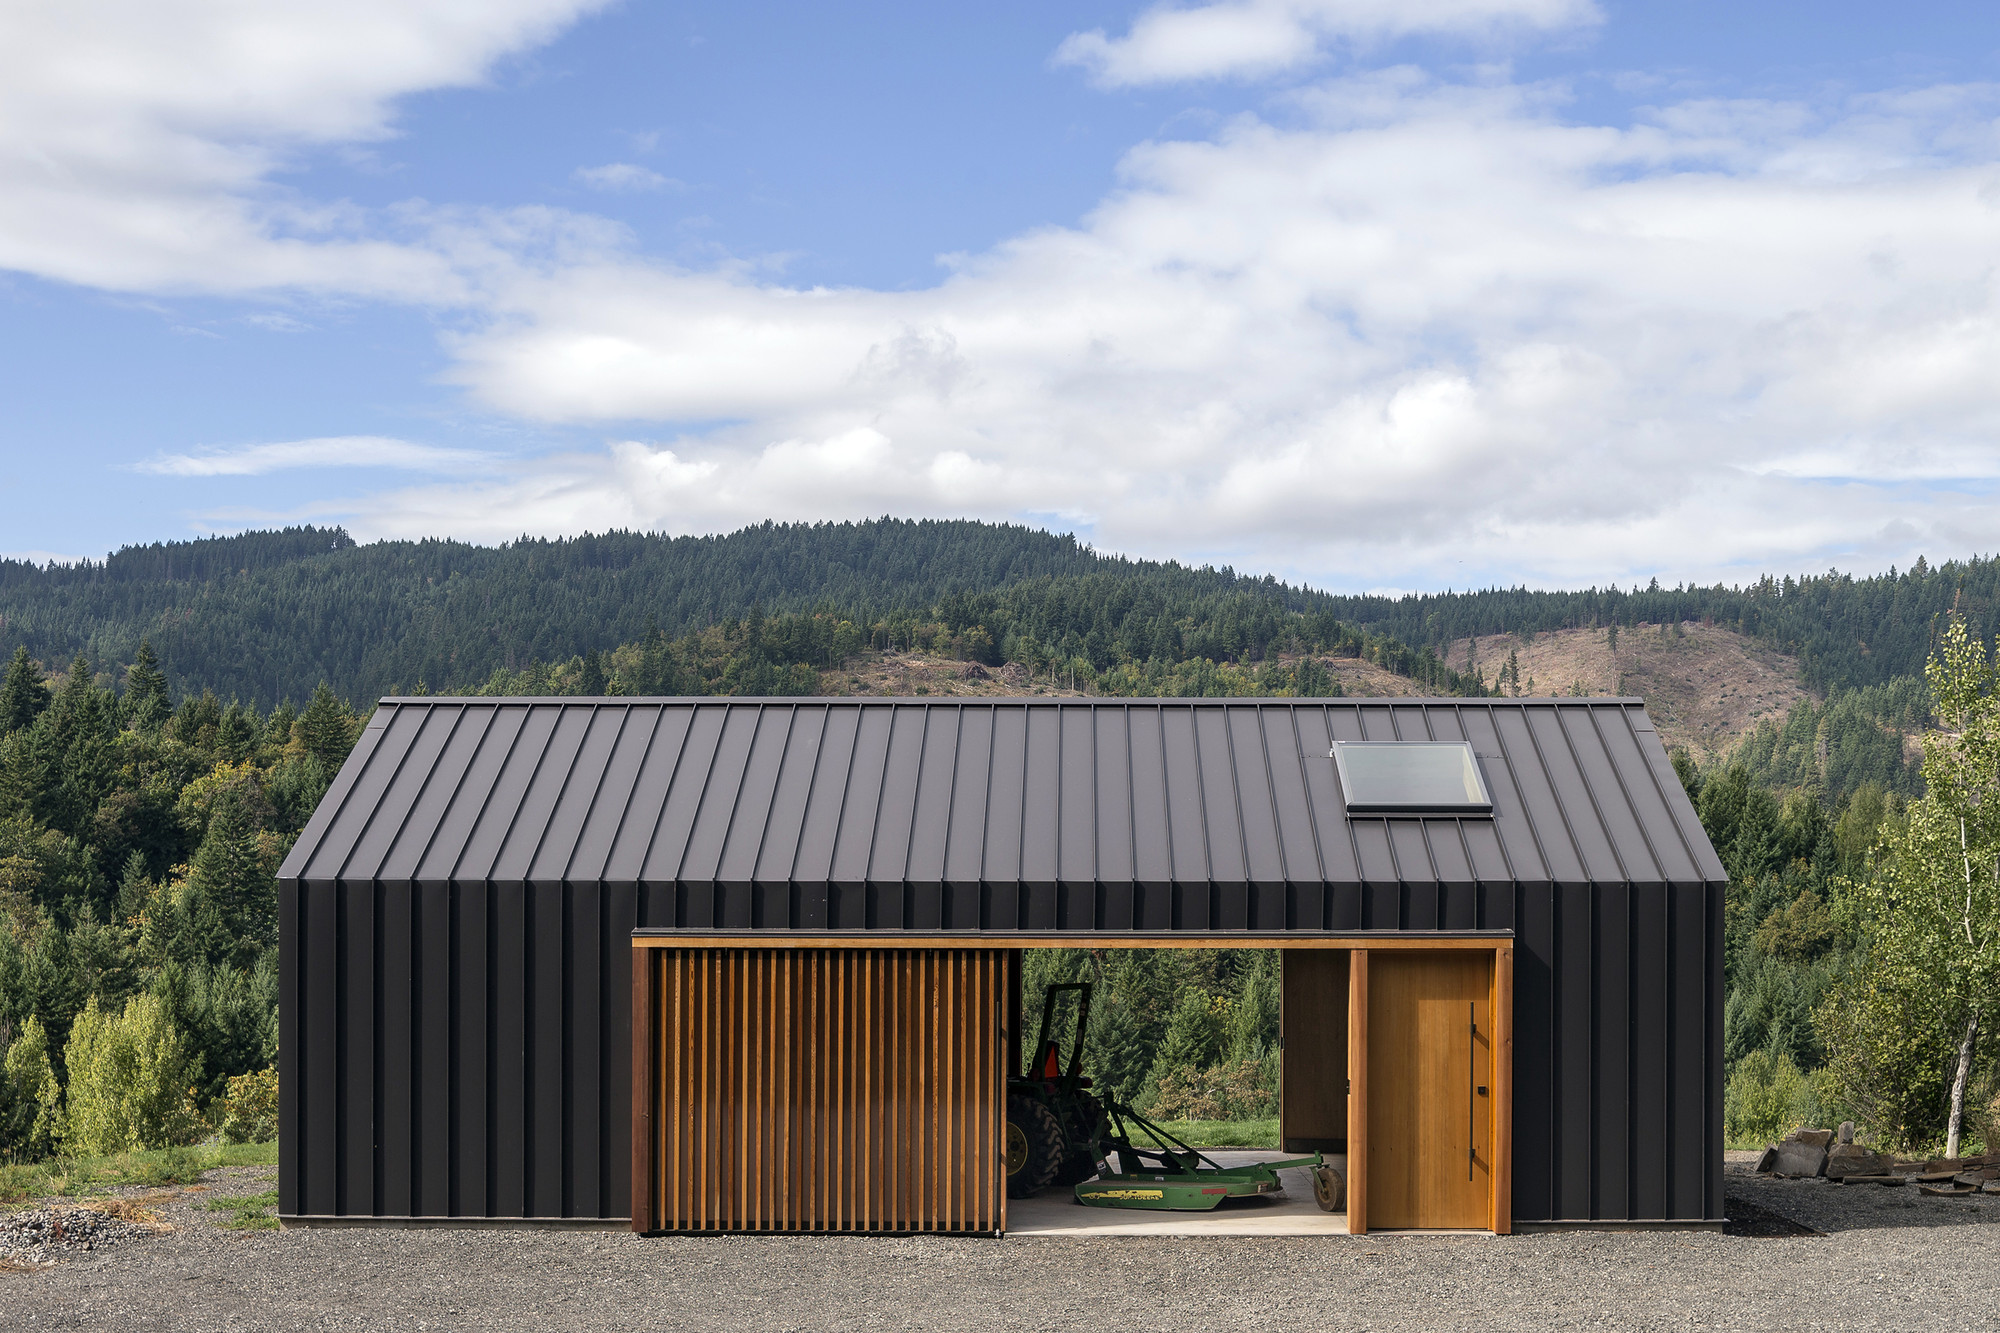 Elk Valley Tractor Shed / FIELDWORK Design & Architecture, © Brian Walker Lee